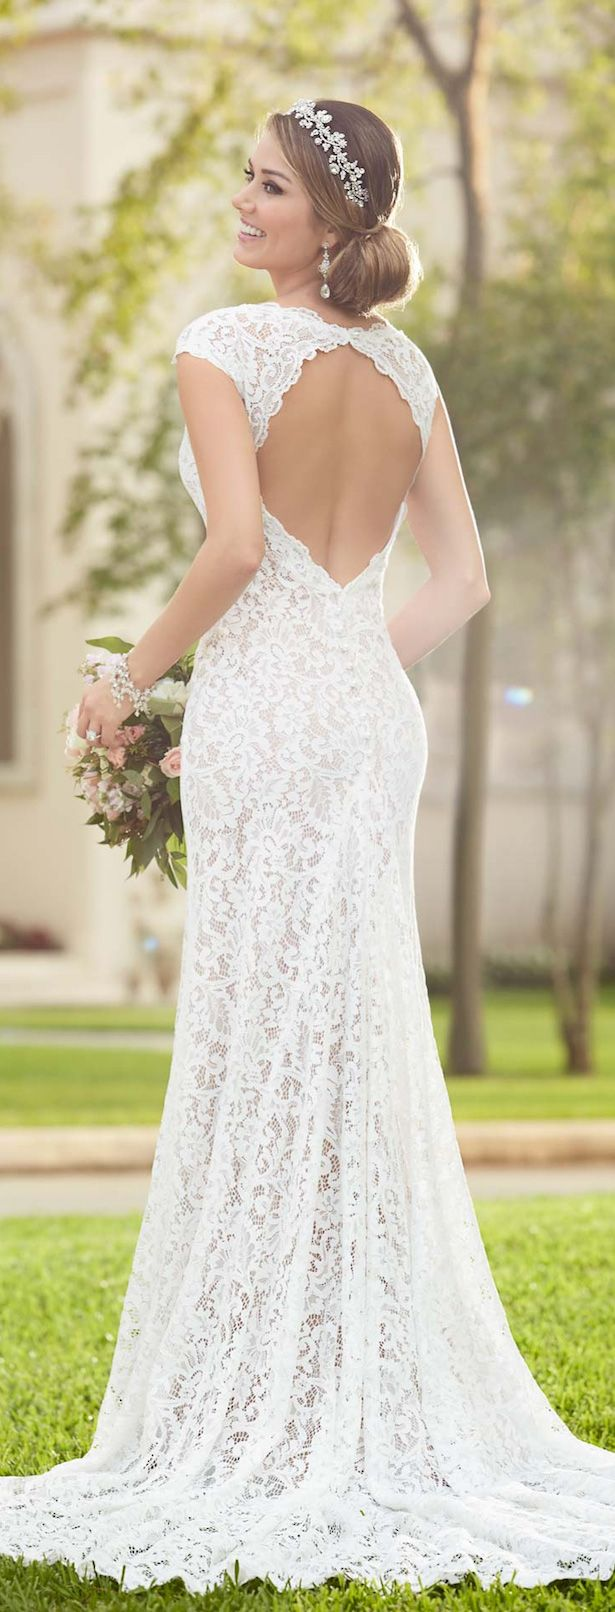 Cute Stella York Spring Bridal Collection Simple Lace Wedding DressStella